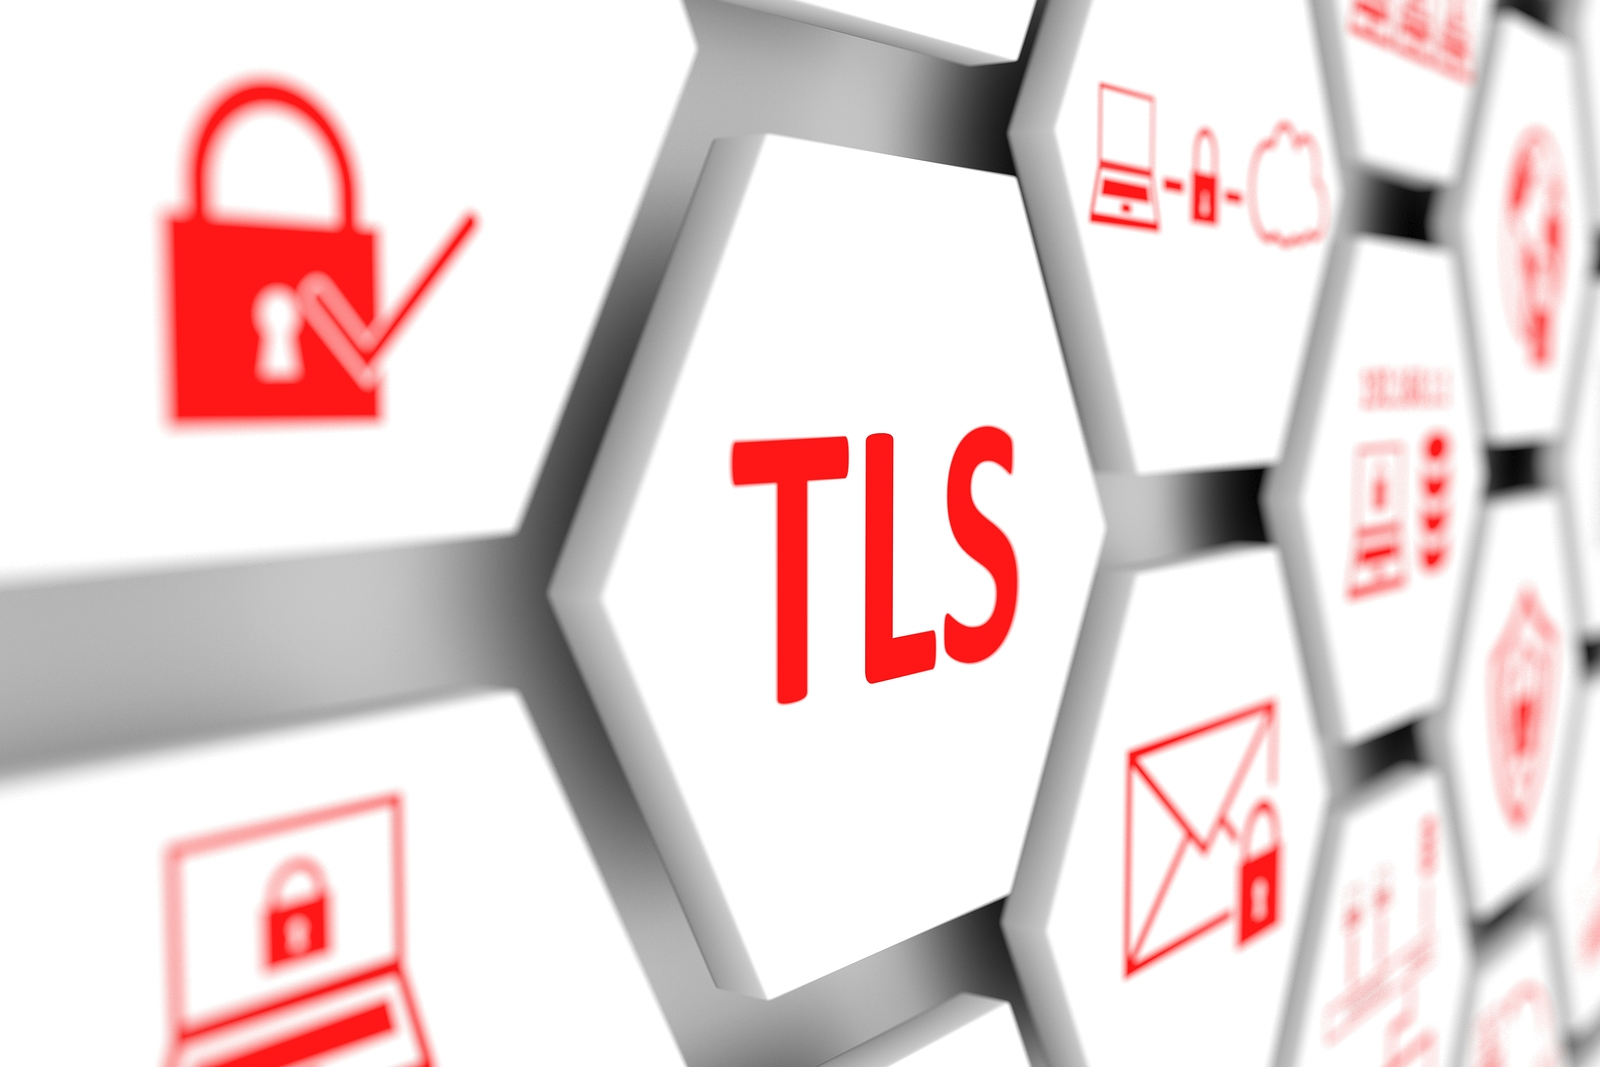 Apple  Microsoft  Google Announce Plans To Disable Tls 1 0